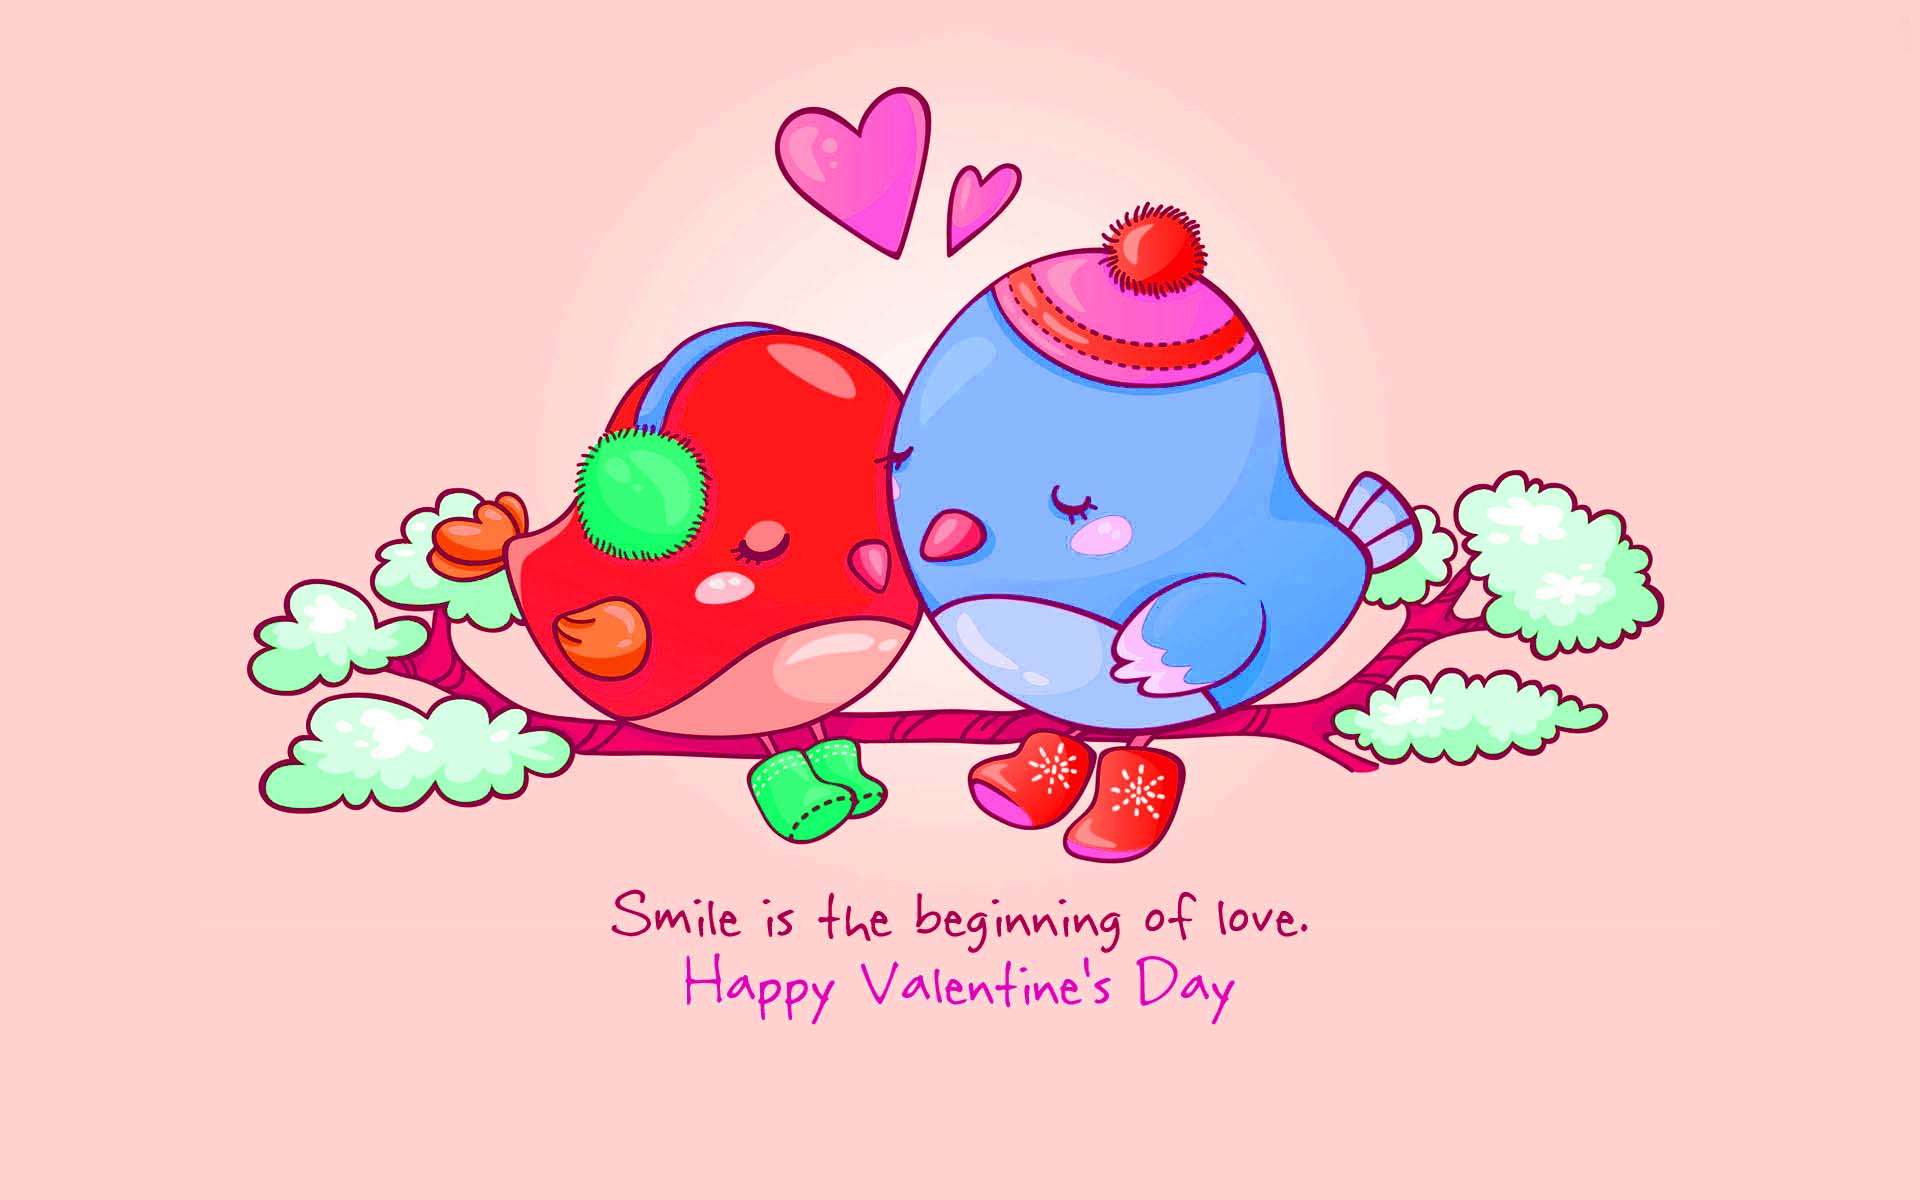 cute valentines day wallpapers - wallpapersafari